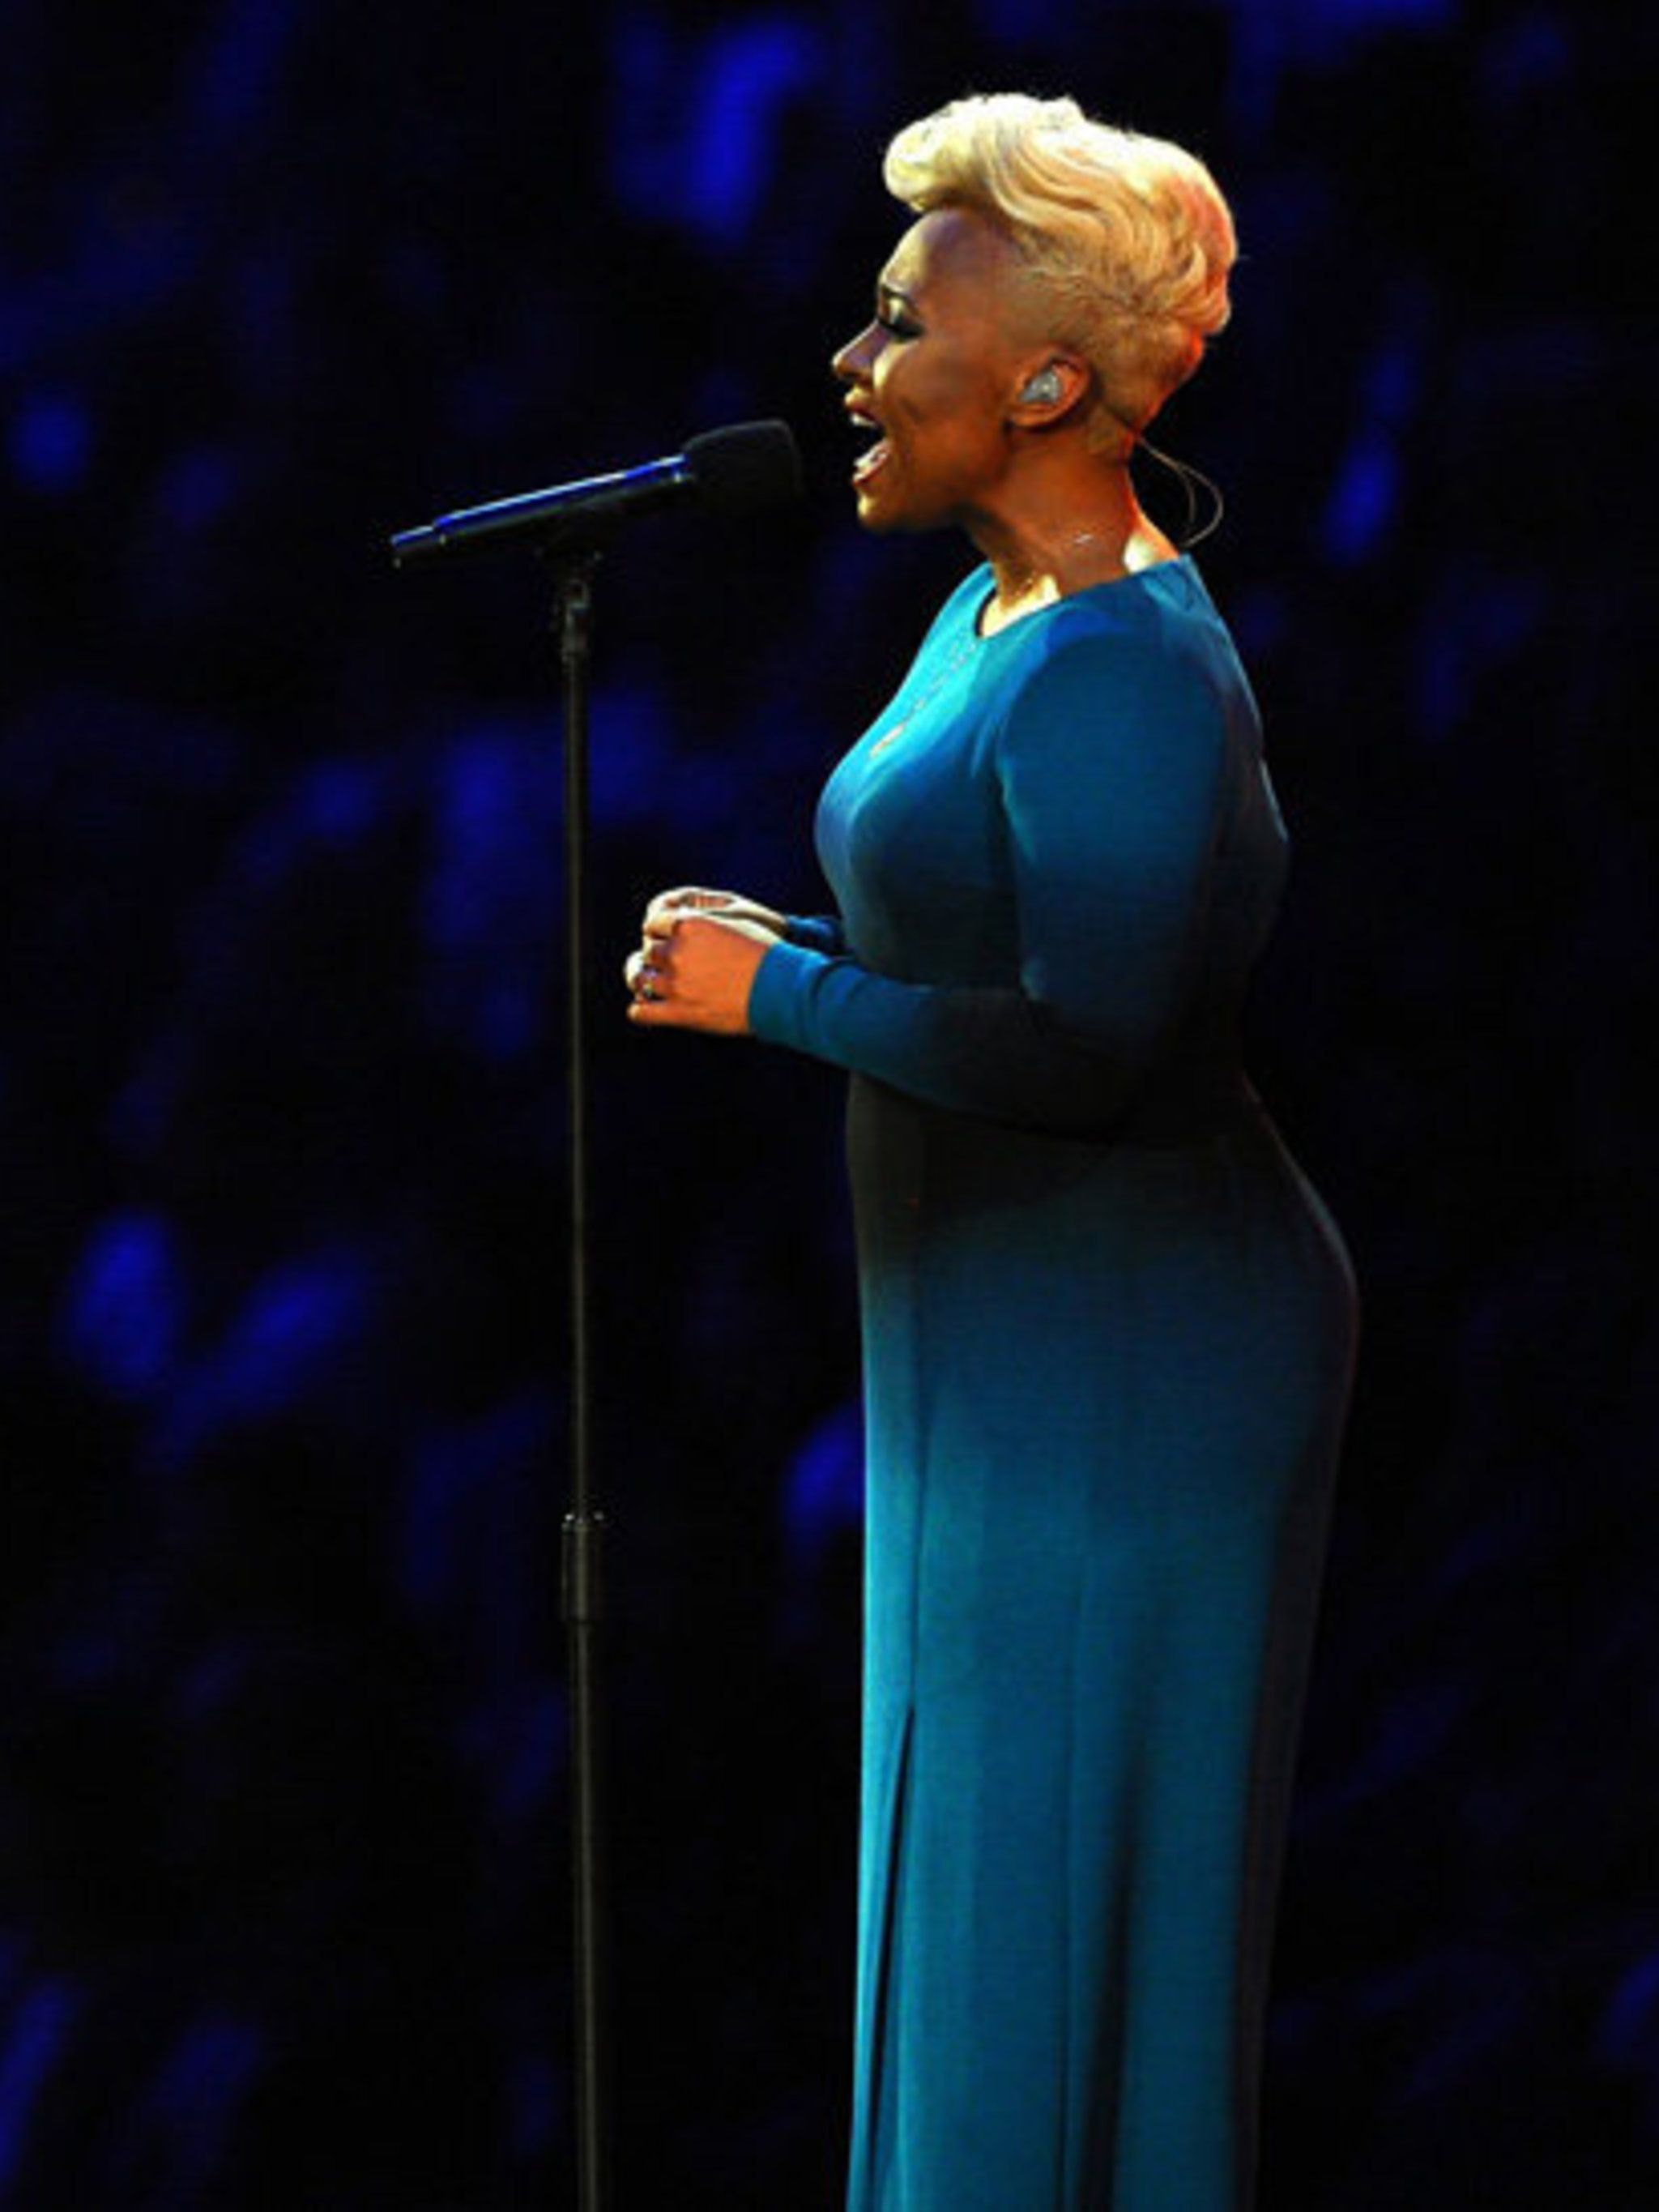 """<p>ELLE Style Awards 2012 singer Emeli Sande wearing <a href=""""http://www.elleuk.com/catwalk/designer-a-z/jonathan-saunders/autumn-winter-2012"""">Jonathan Saunders</a> for her performance at the Olympic opening ceremony</p>"""